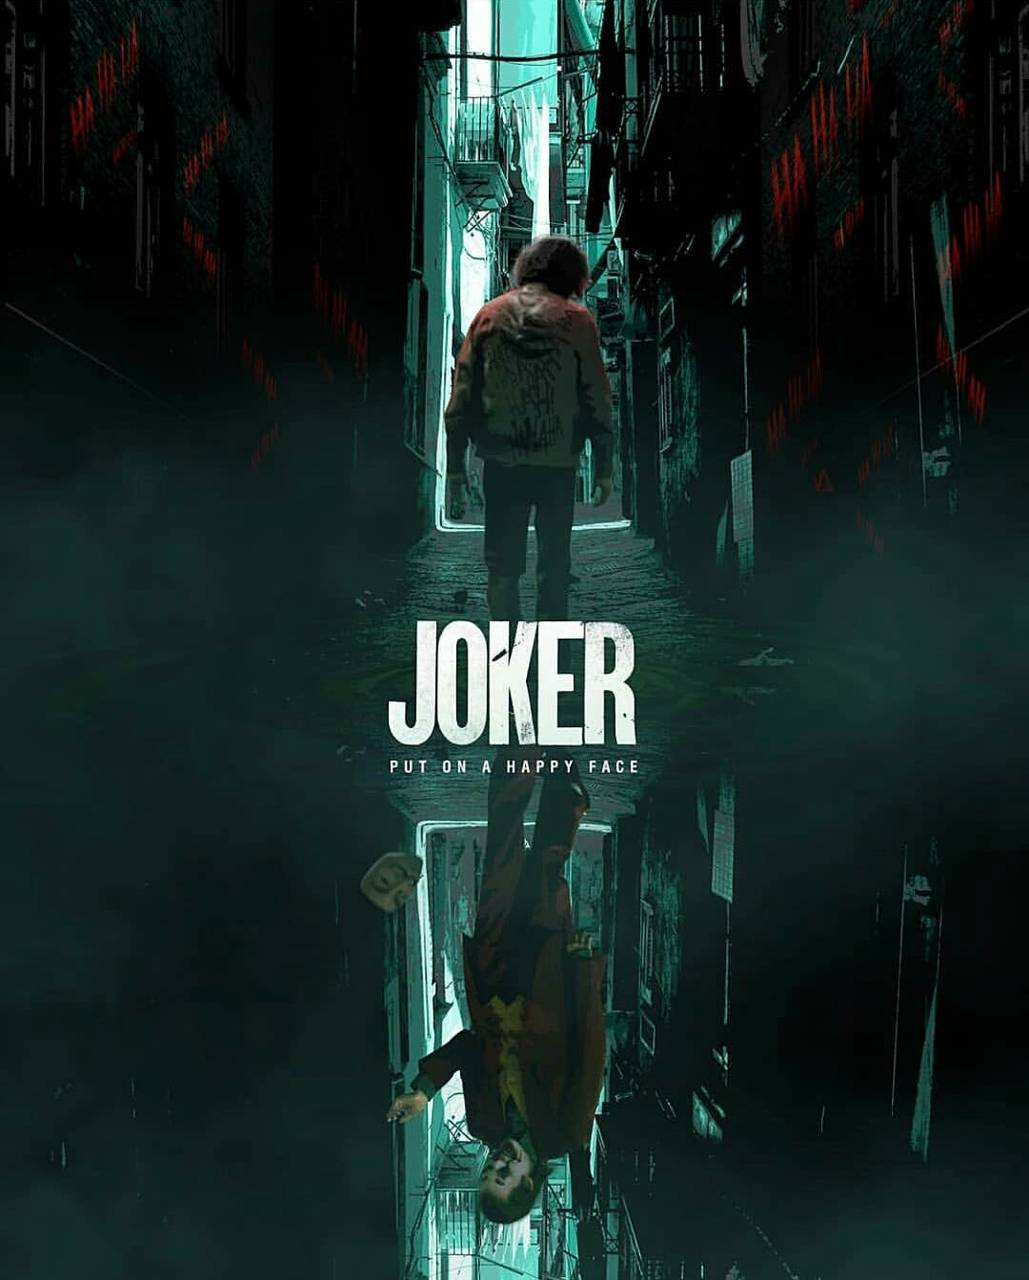 joker-wallpaper-4k-for-mobile-download